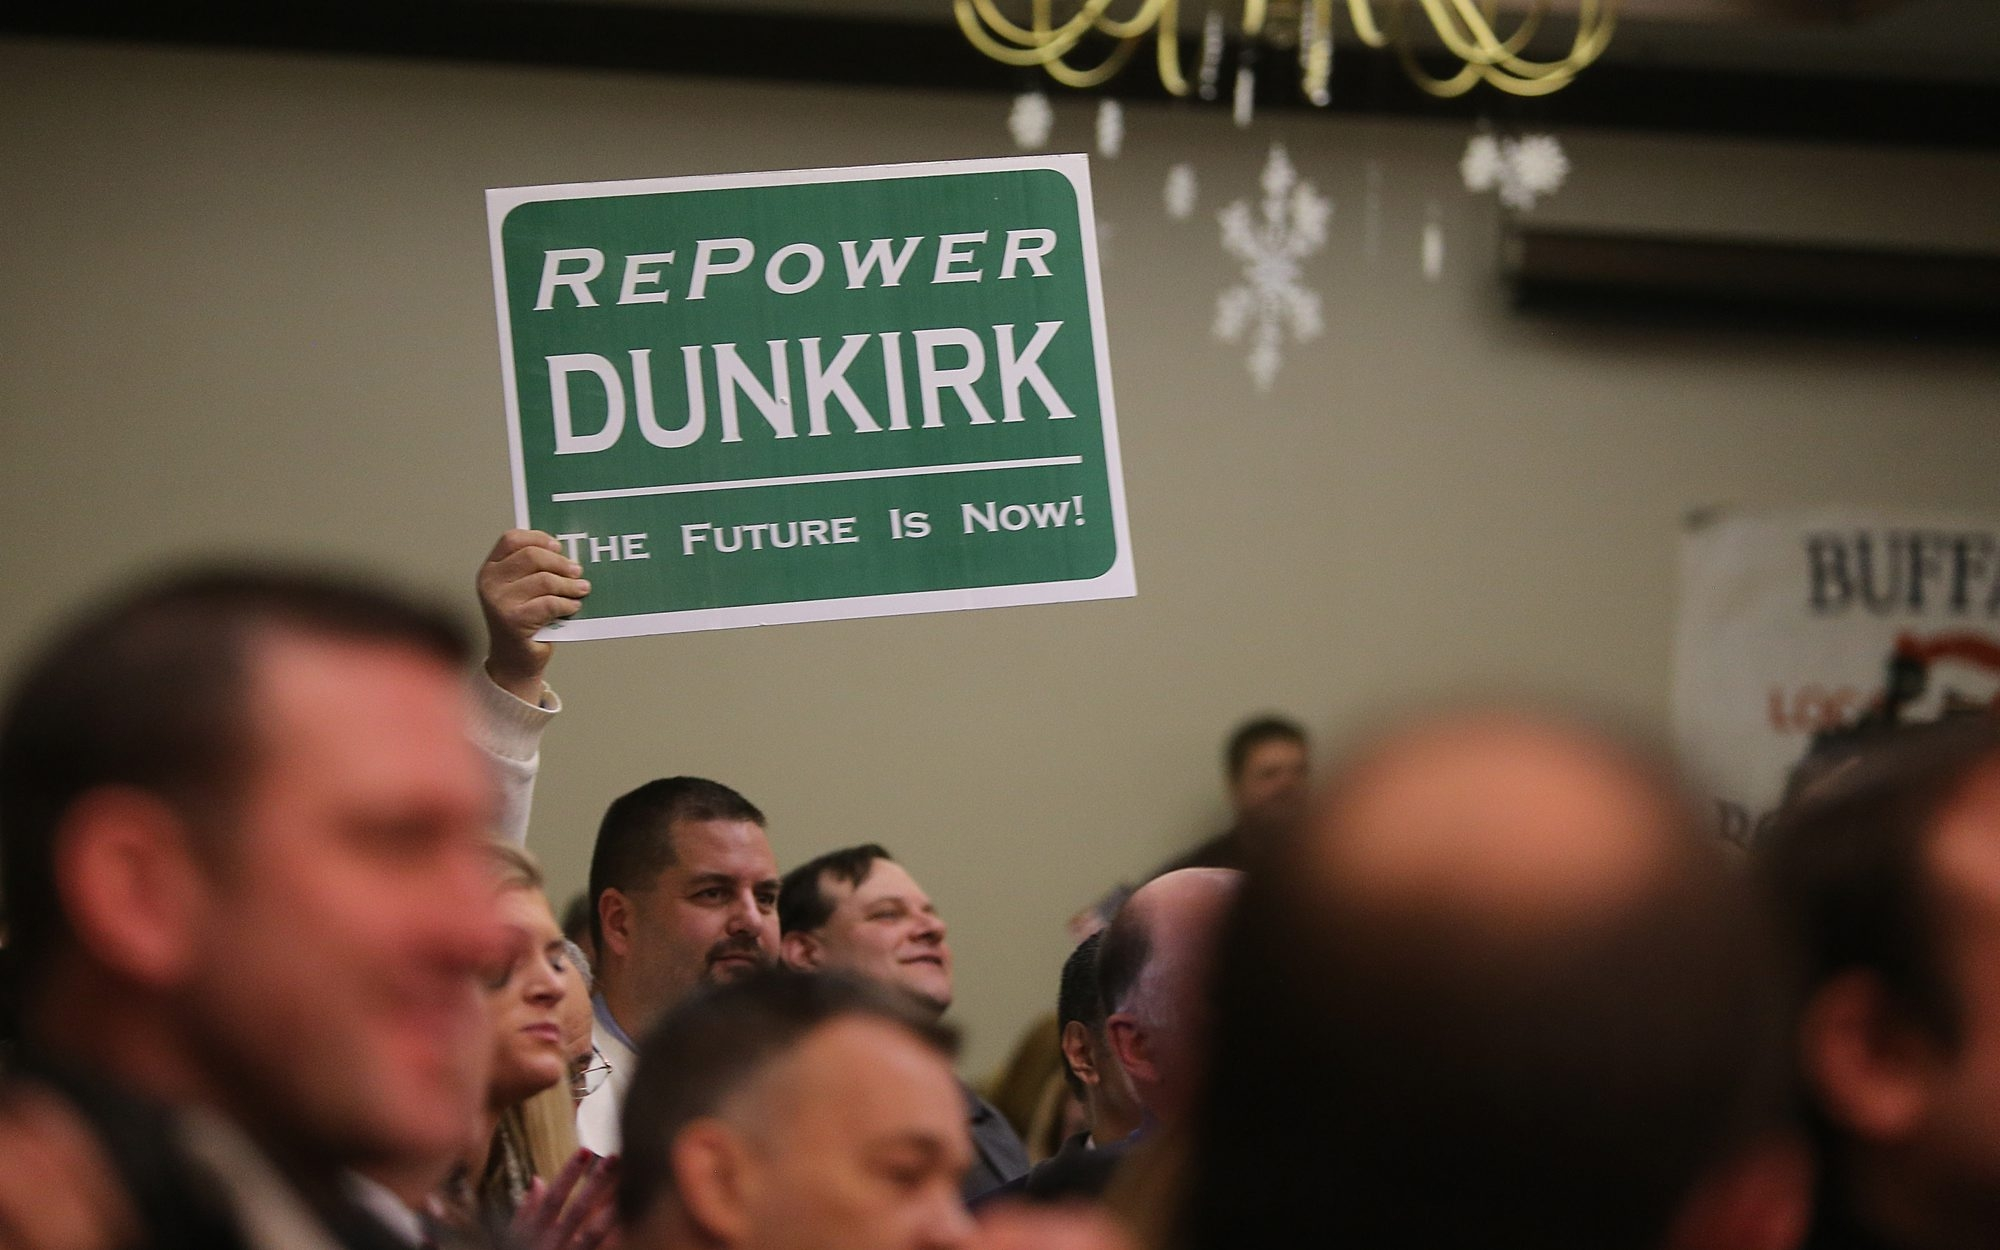 The sign expresses the sentiments of hundreds on hand this morning to hear Gov. Andrew M. Cuomo announce that Dunkirk's coal-fired power pant will be converted to natural gas and remain open.